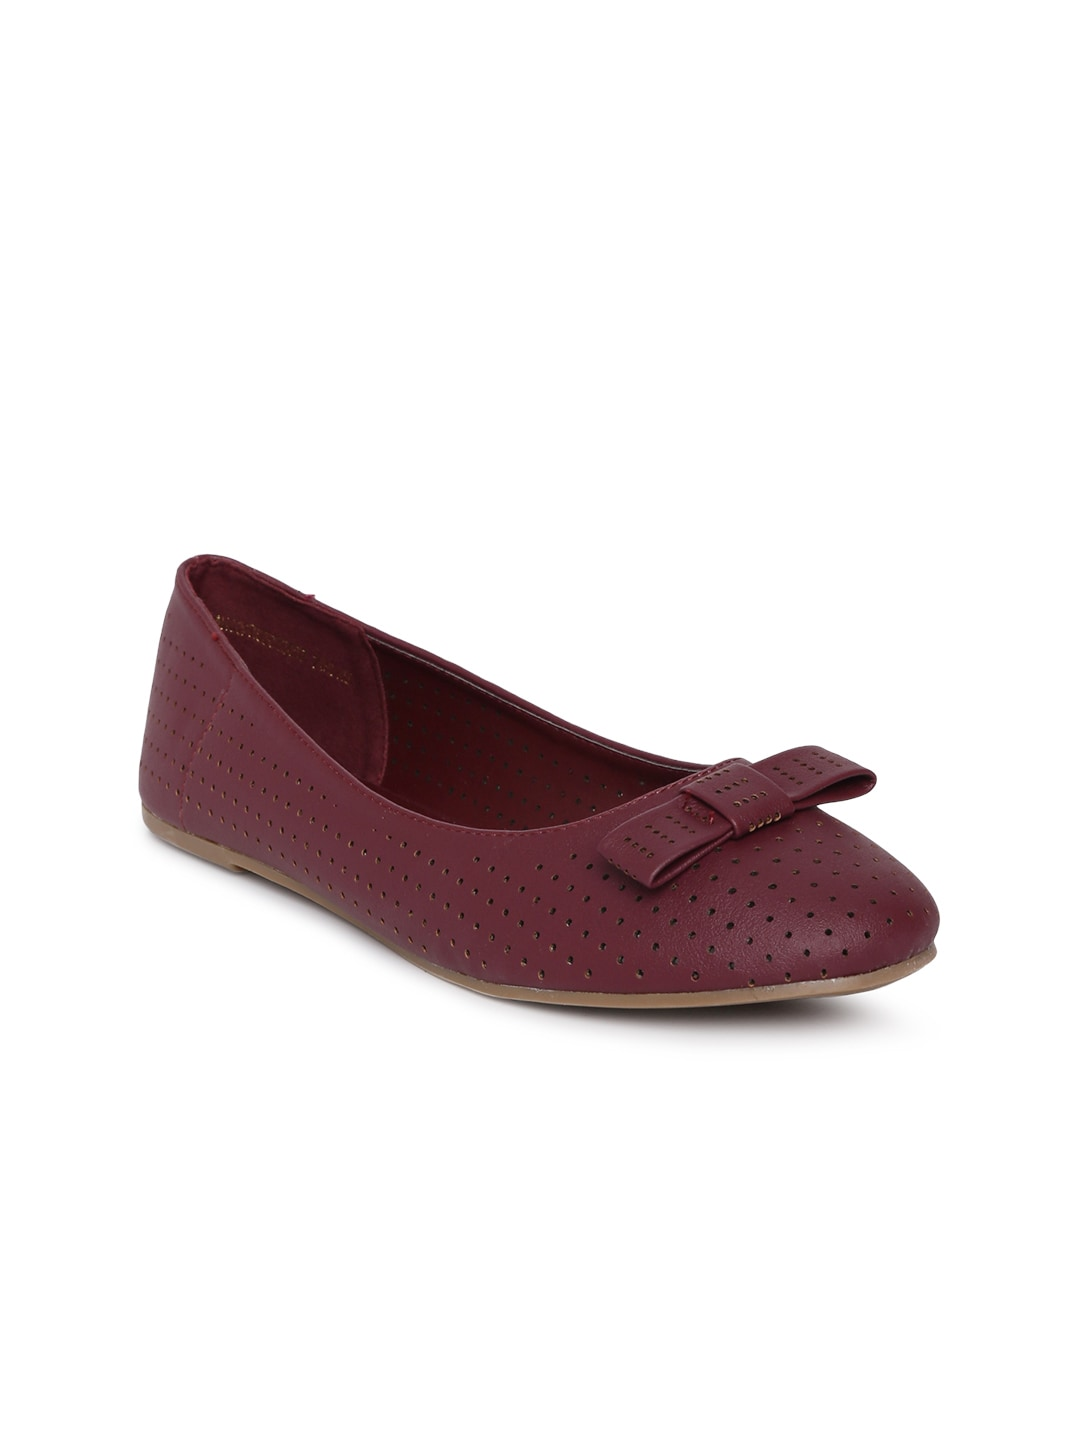 309e6ff52 Flats - Buy Womens Flats and Sandals Online in India